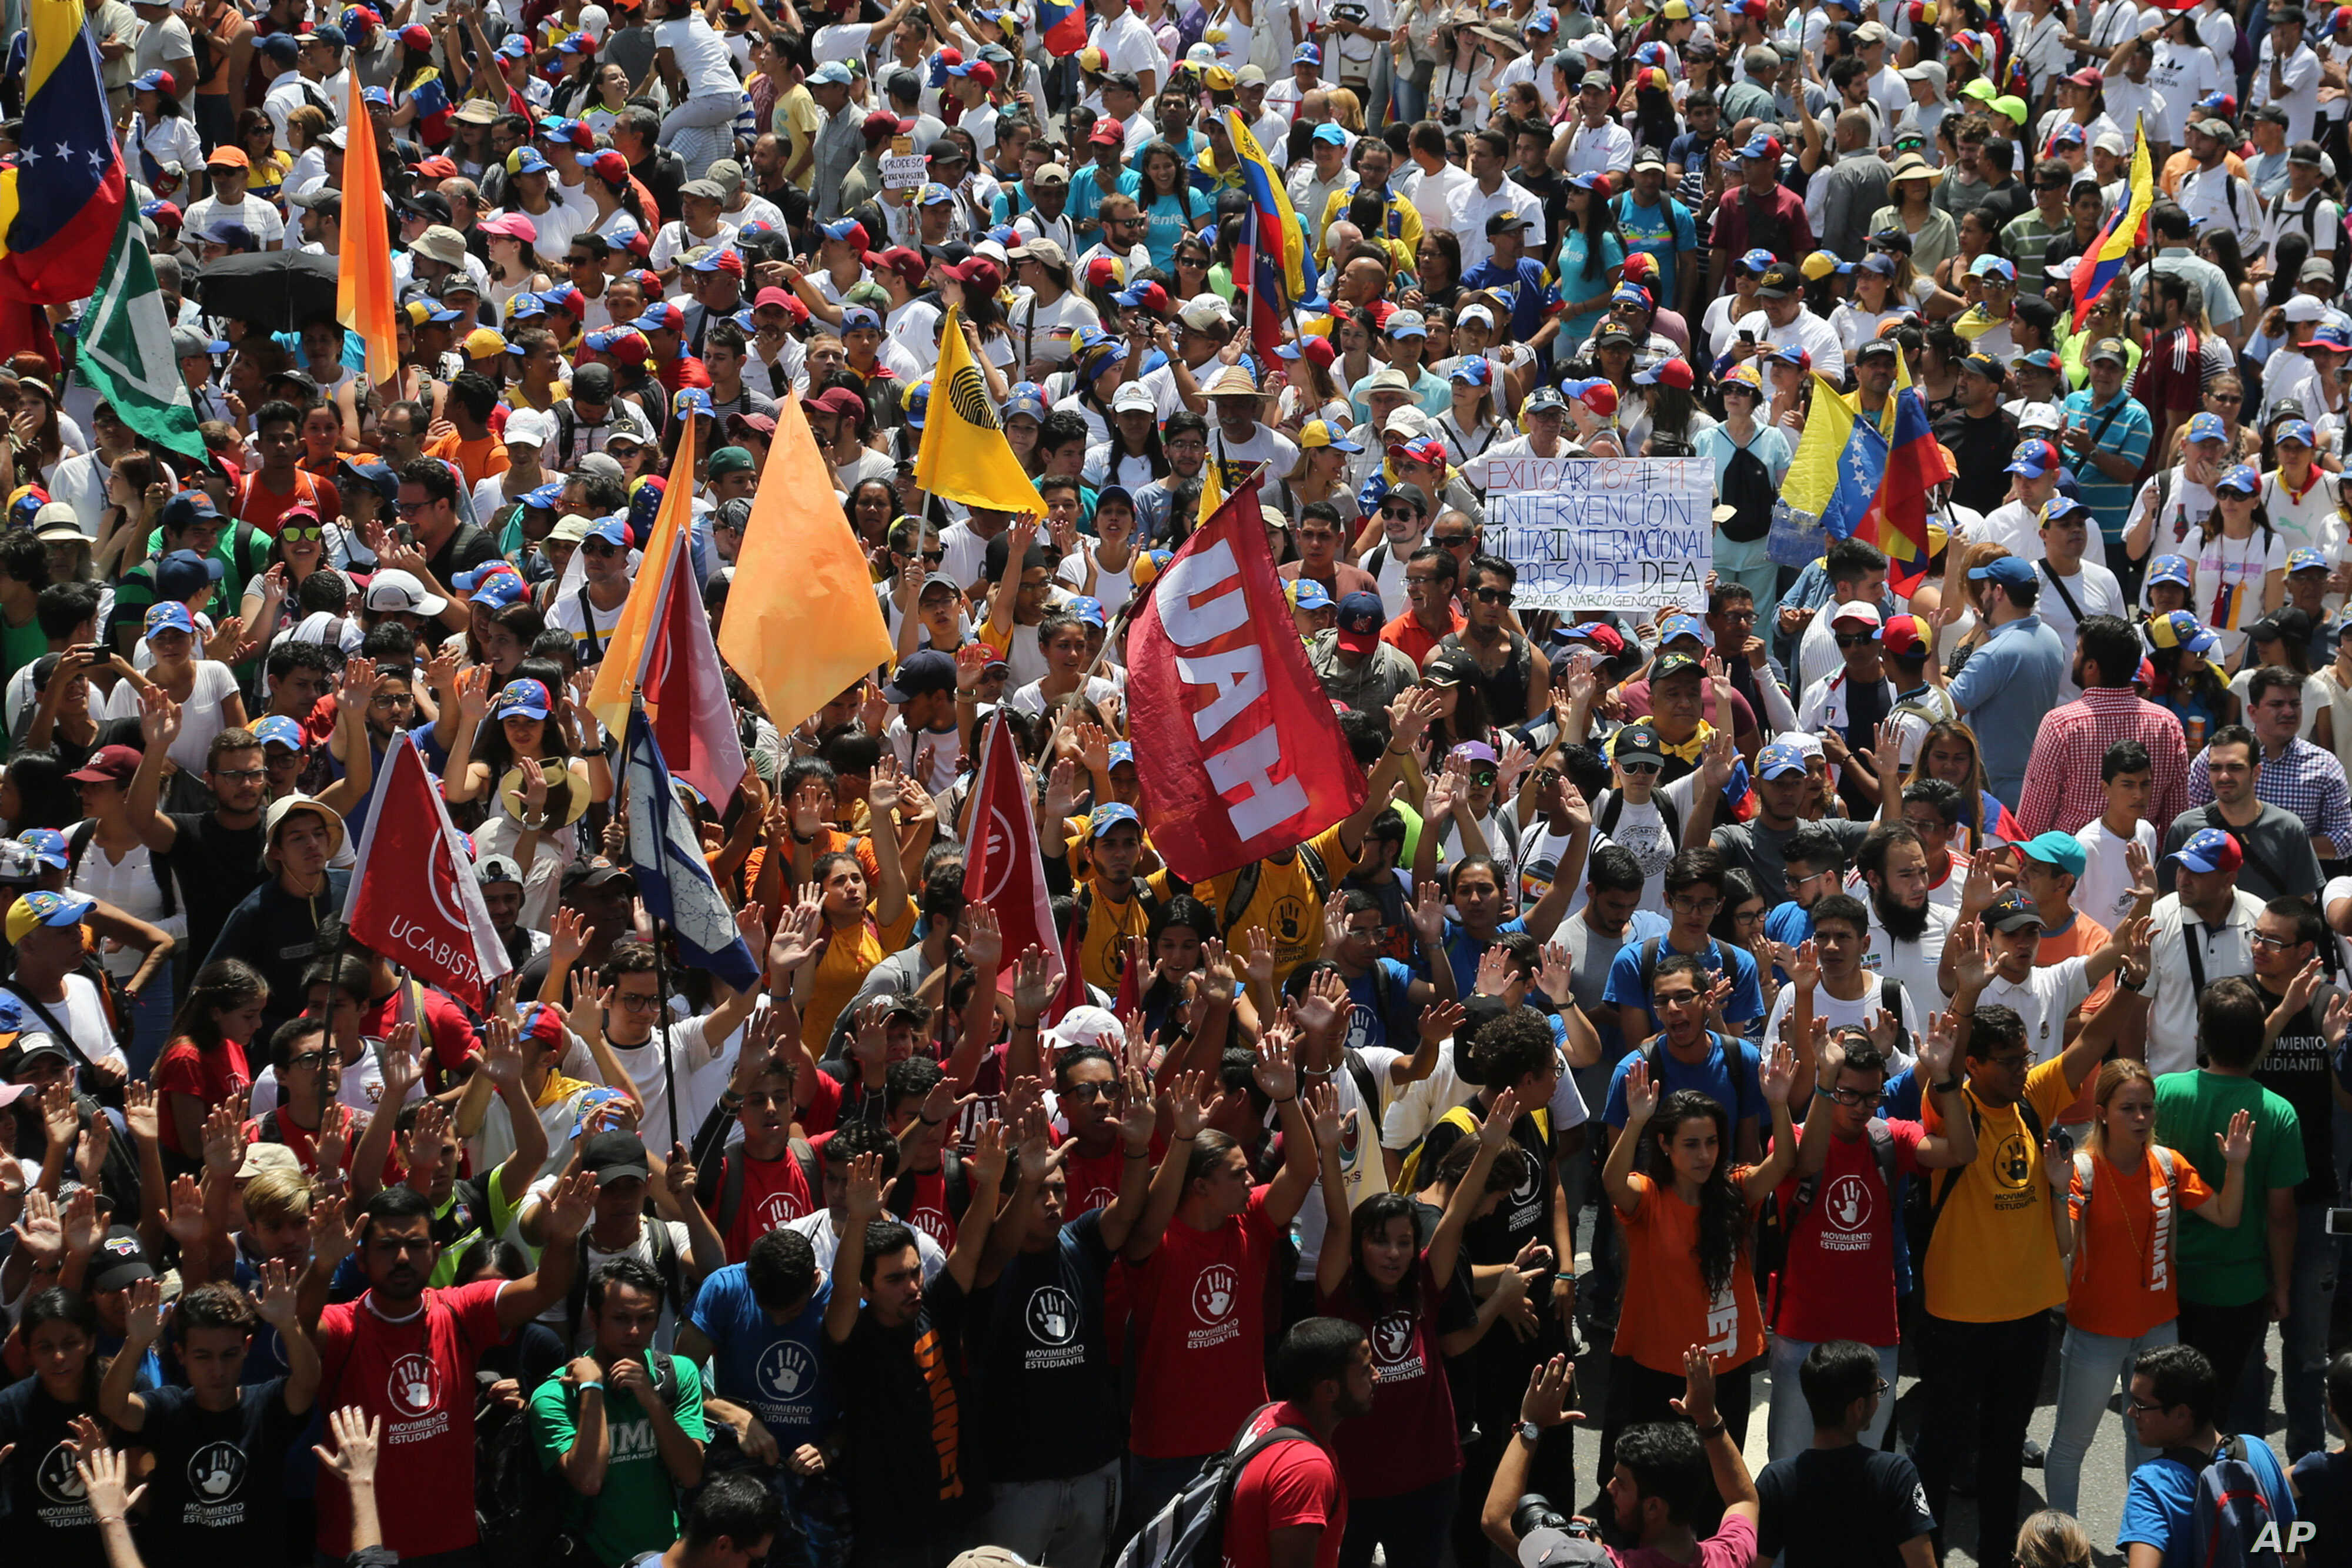 University students walk to a meeting point for a march against the government of President Nicolas Maduro, in Caracas, Venezuela, March 9, 2019.